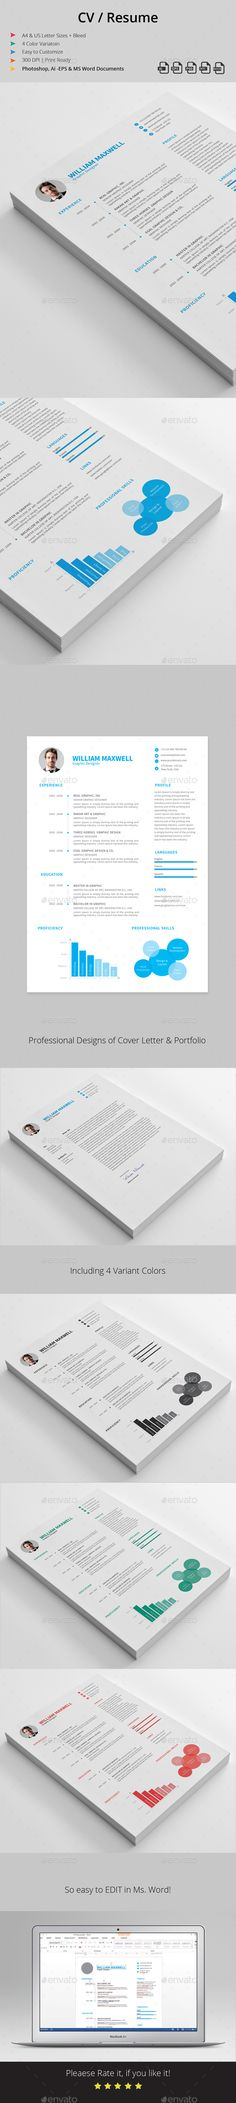 Glory Resume Perfect resume, Resume cv and Cv template - size font for resume